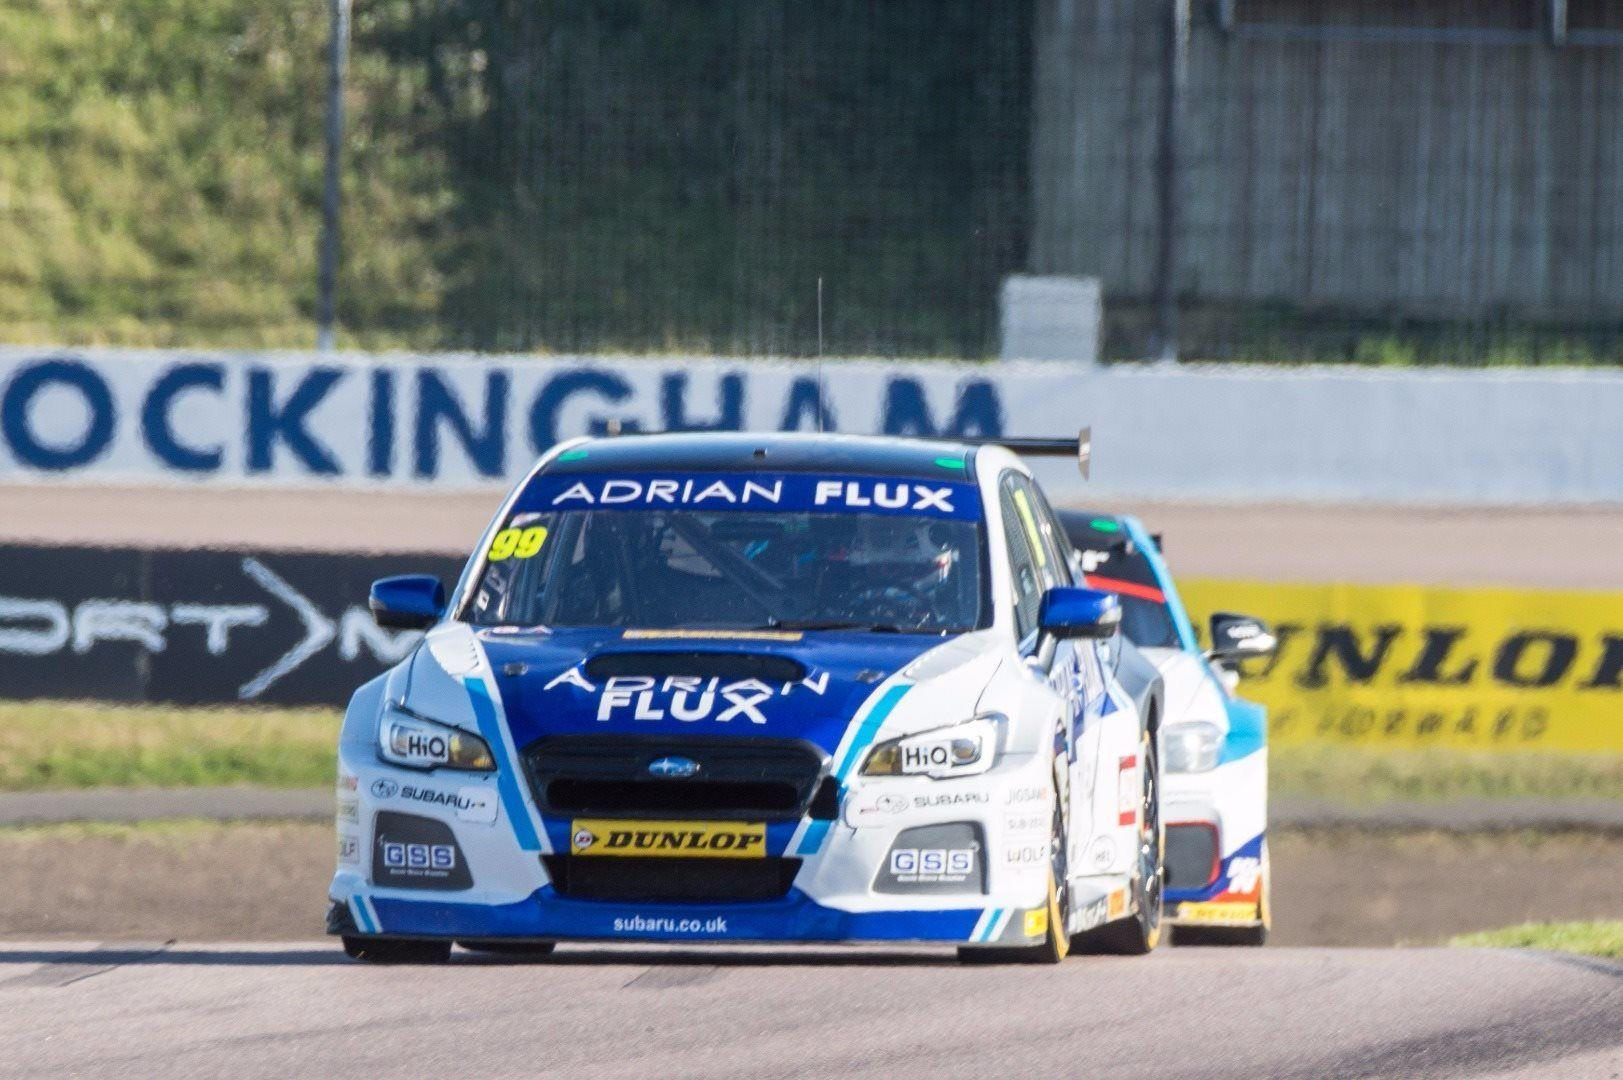 ROCKINGHAM SUBARU RACE REPORT